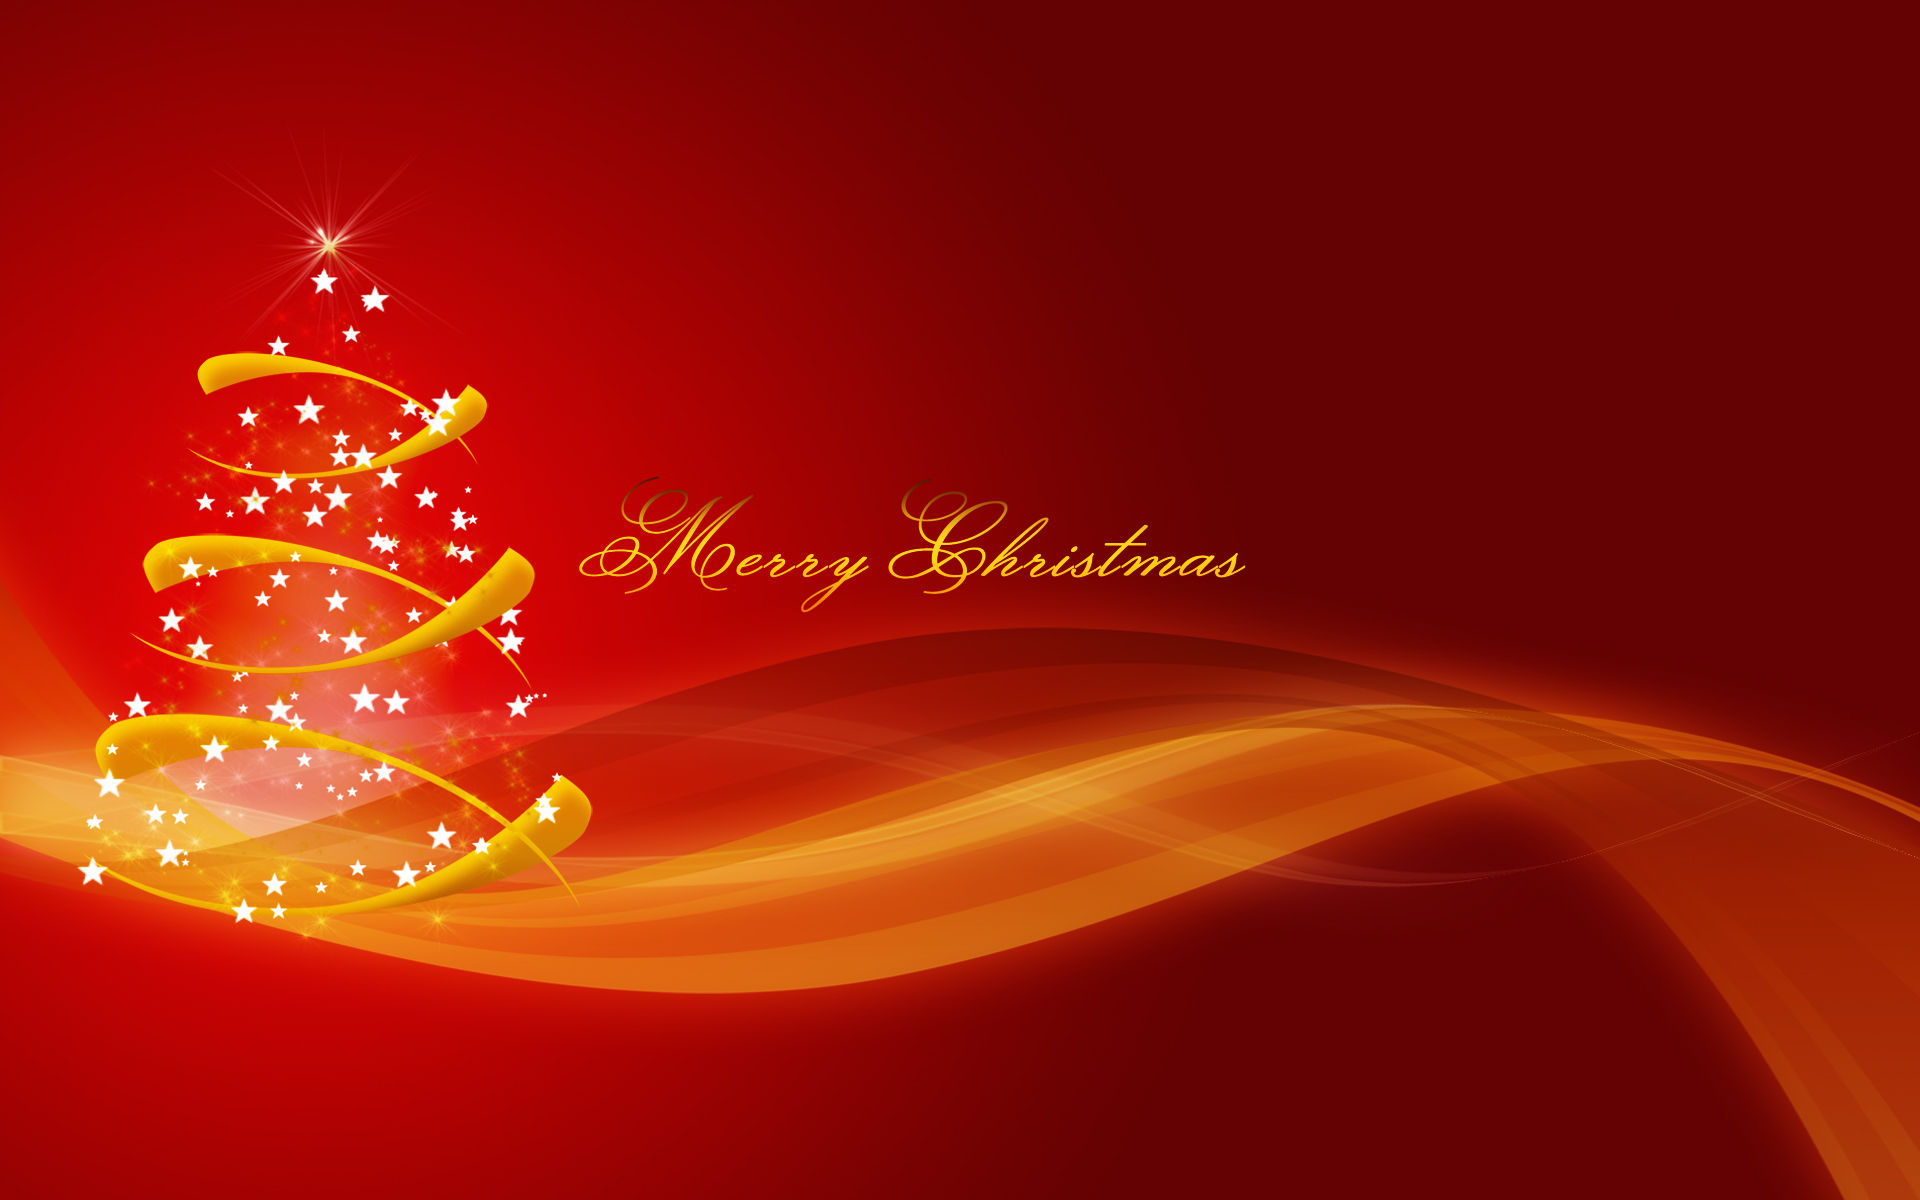 Simple Merry Christmas Wallpaper